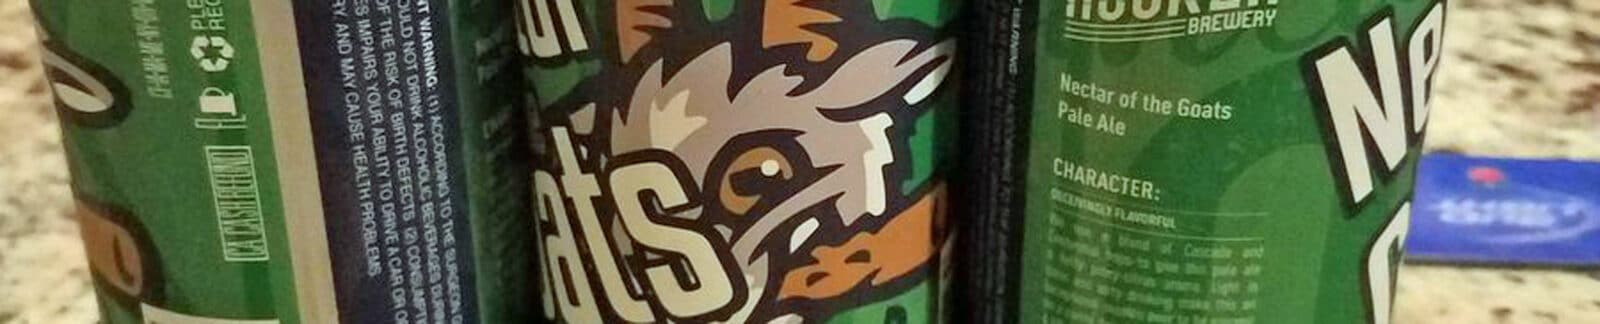 Nectar of the Goats Pale Ale header